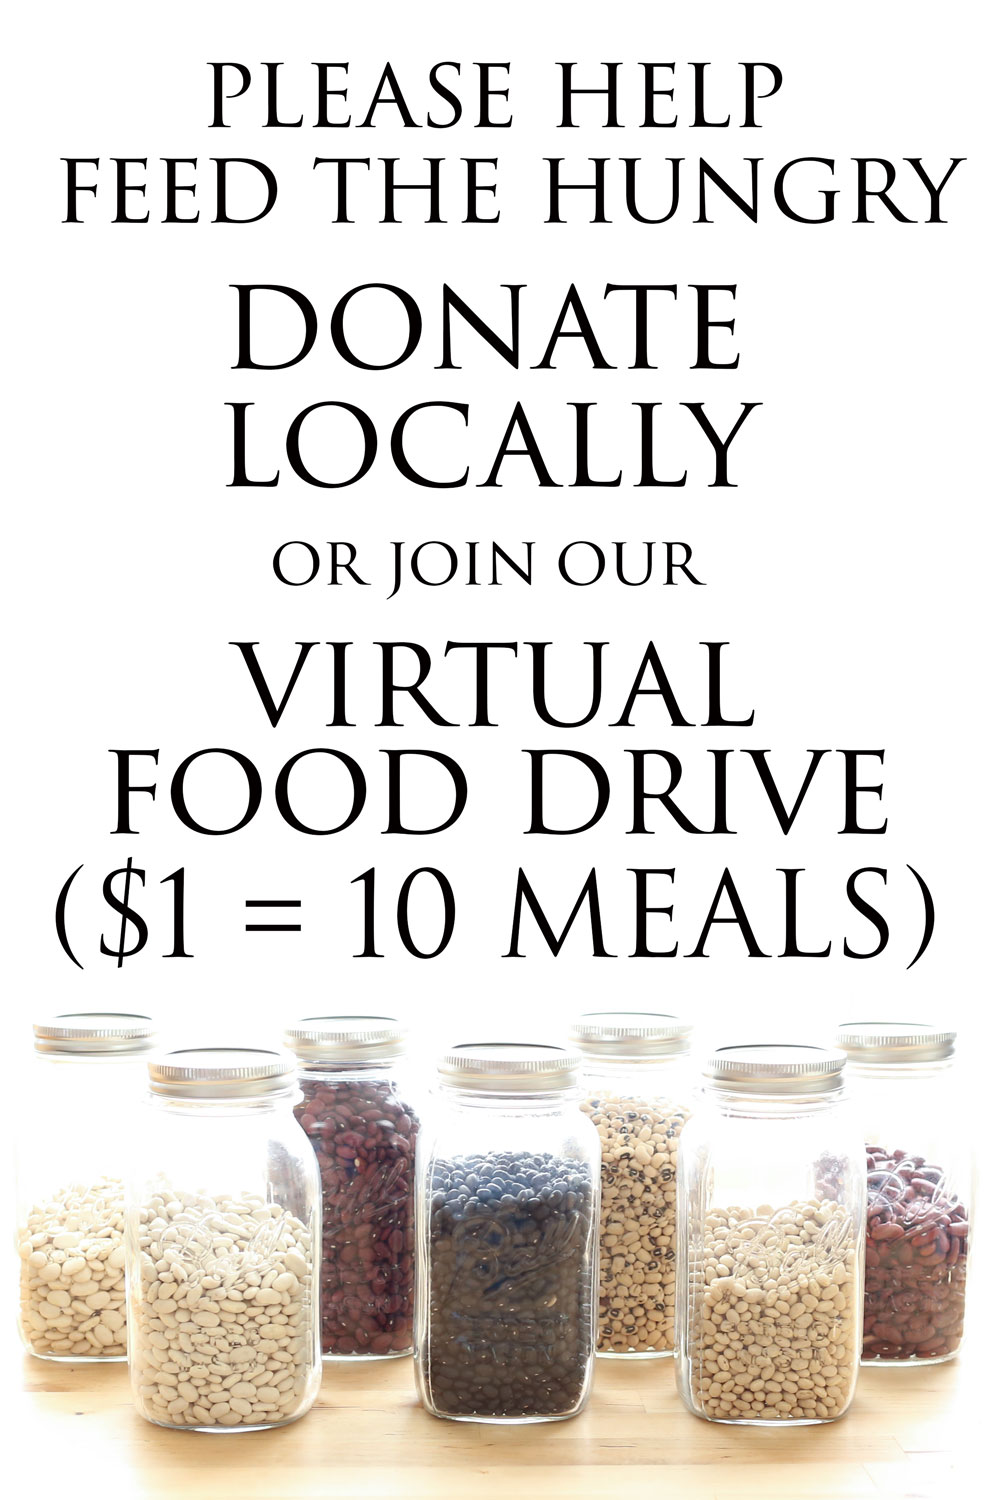 3 Simple Ways to Help Feed the Hungry